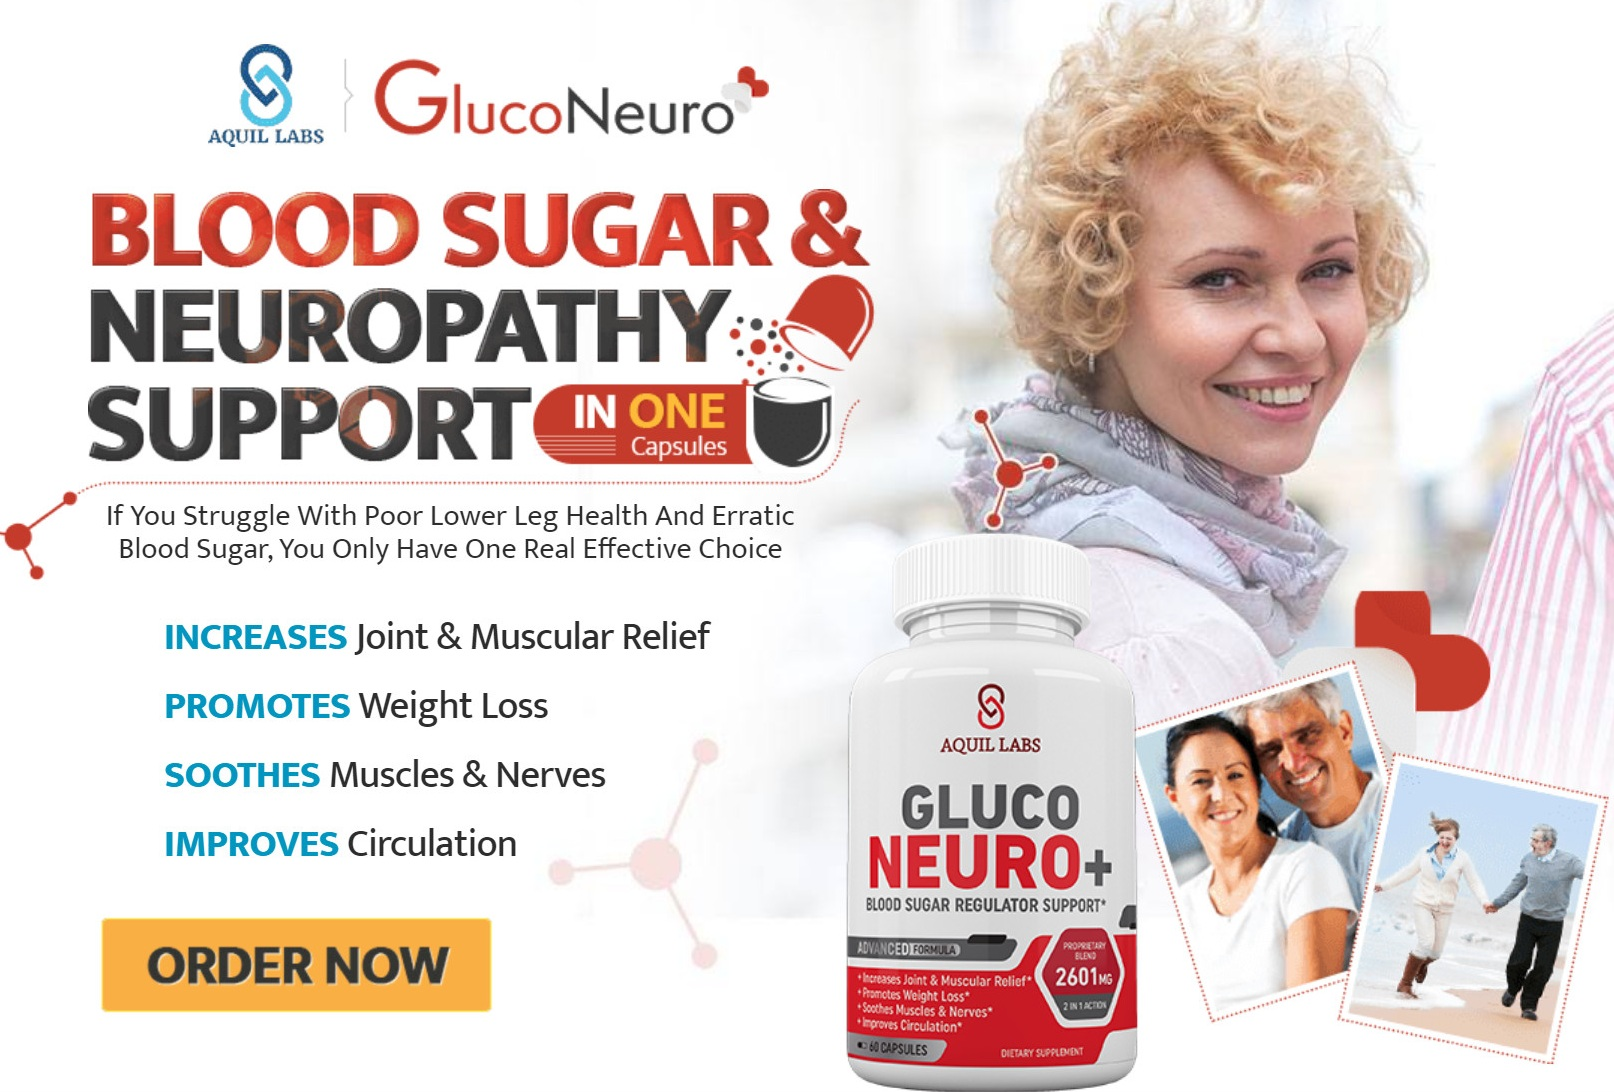 Aquil Labs Gluco Neuro+ Final